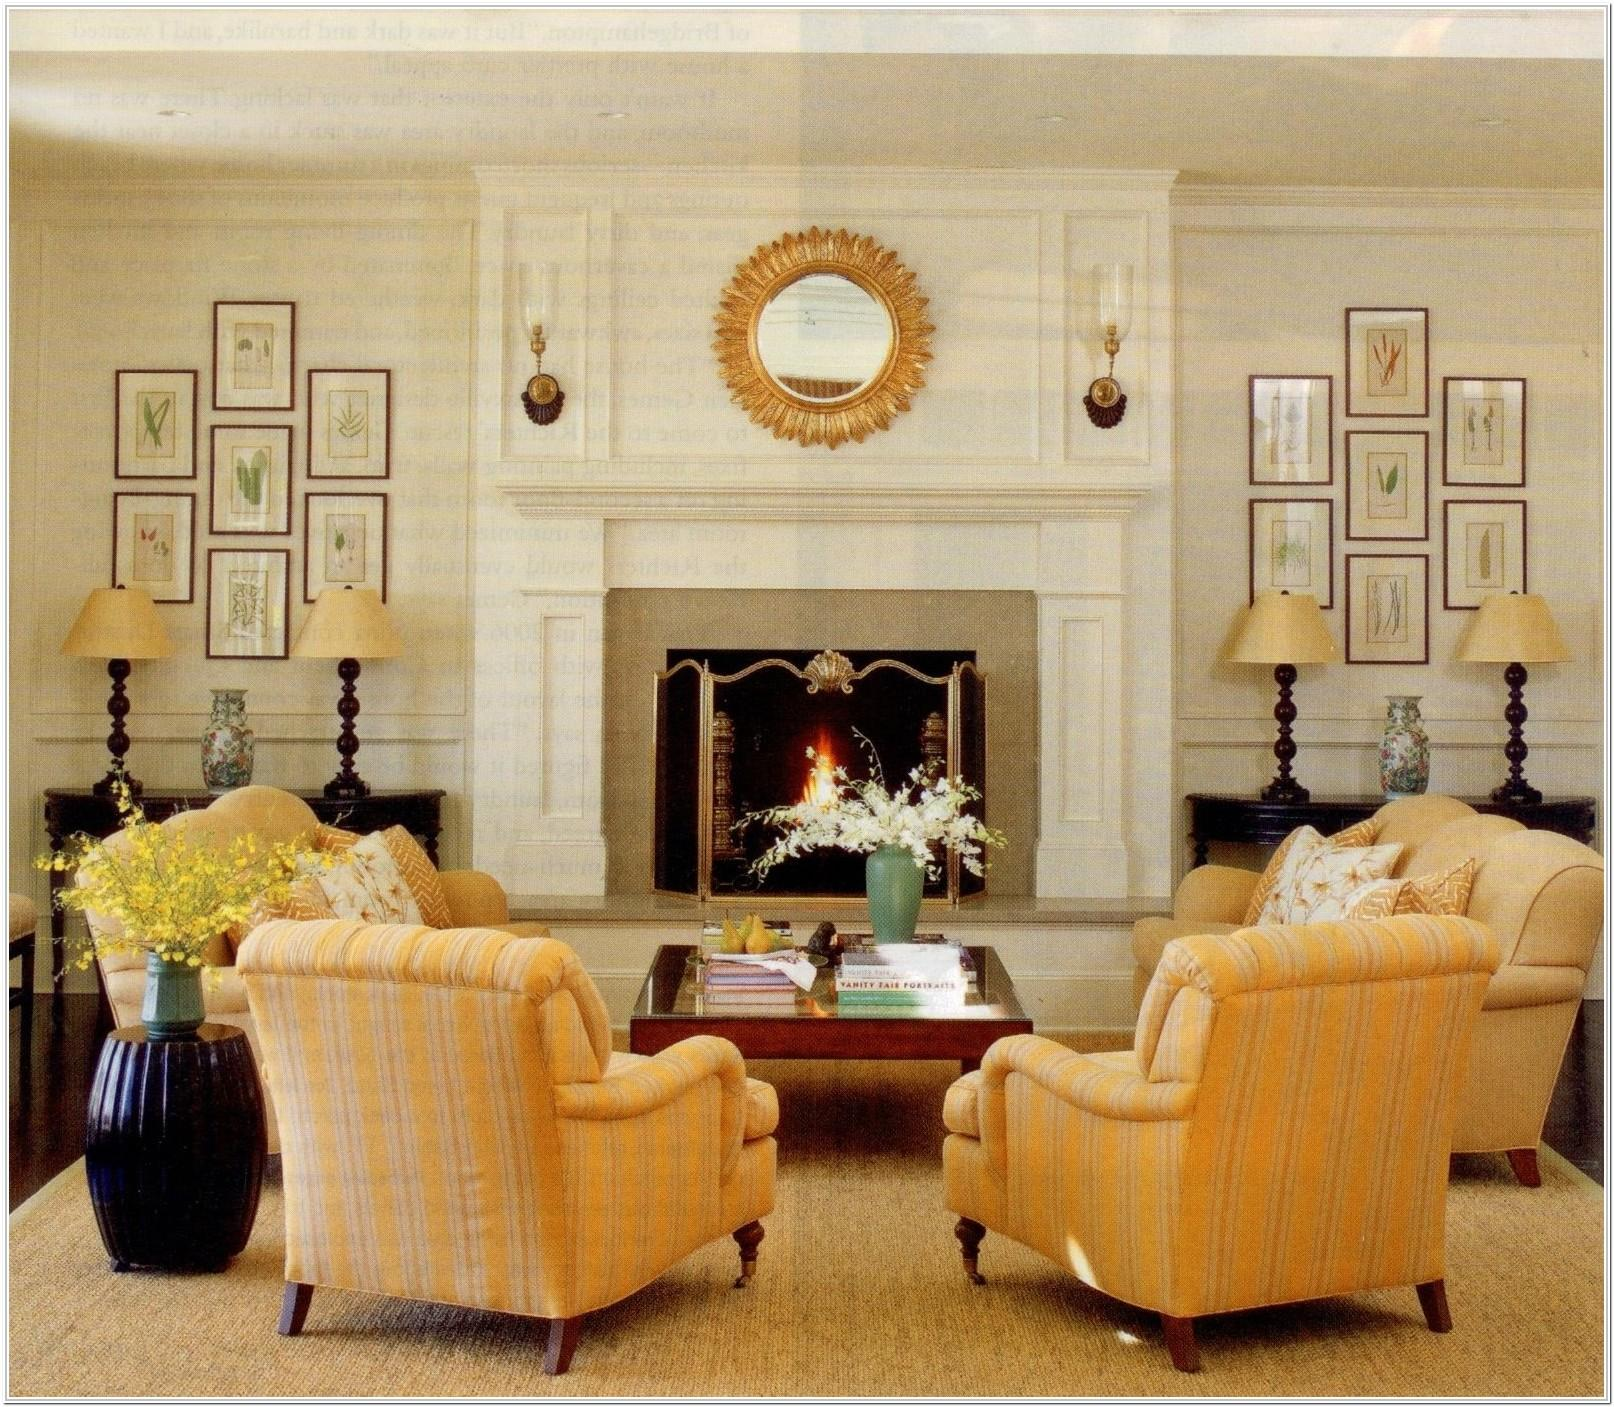 Rectangular Living Room Layout With Fireplace